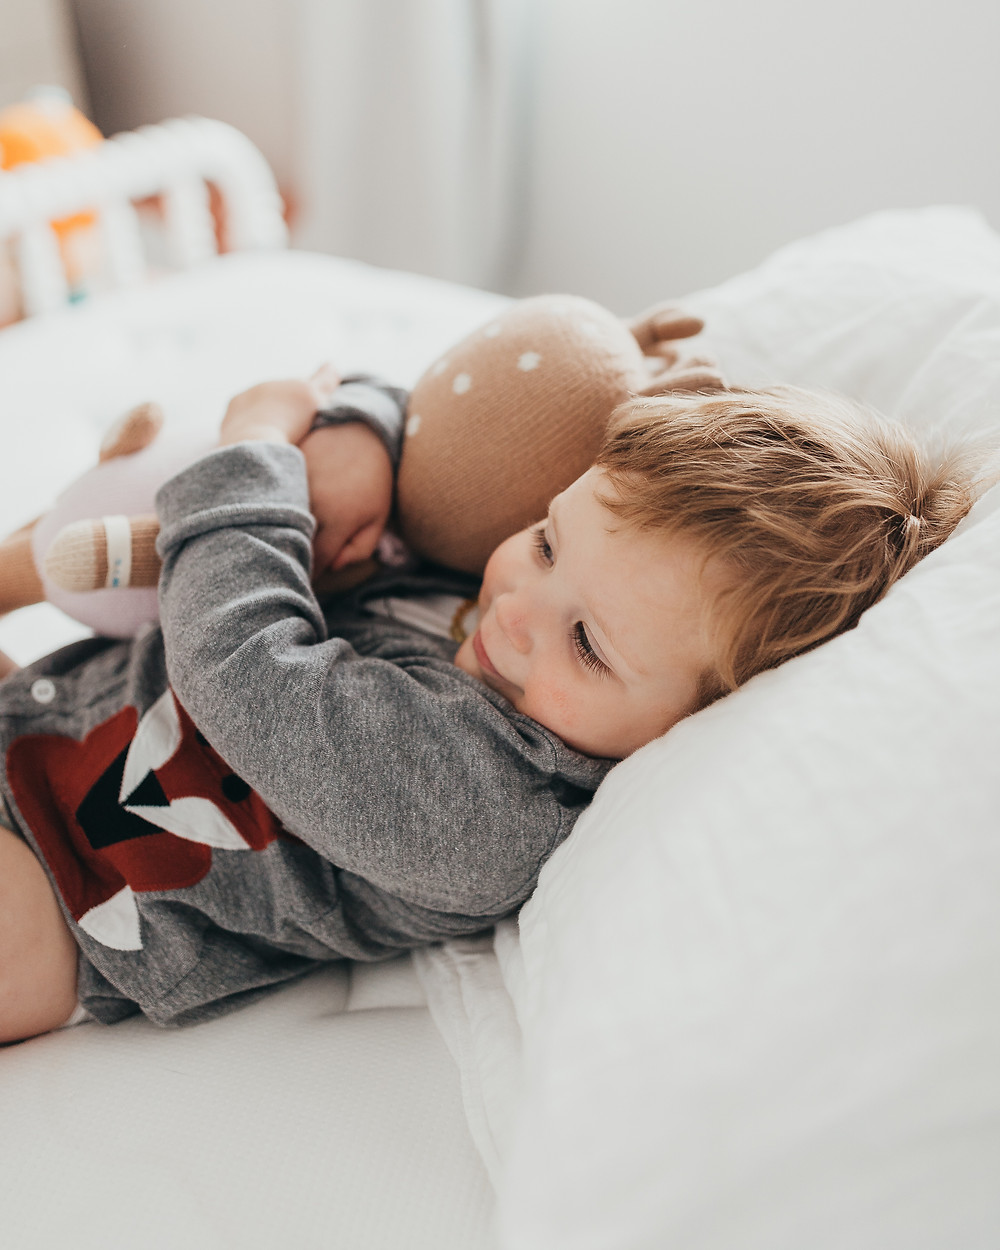 A little boy laying on the bed holding a stuffed animal.